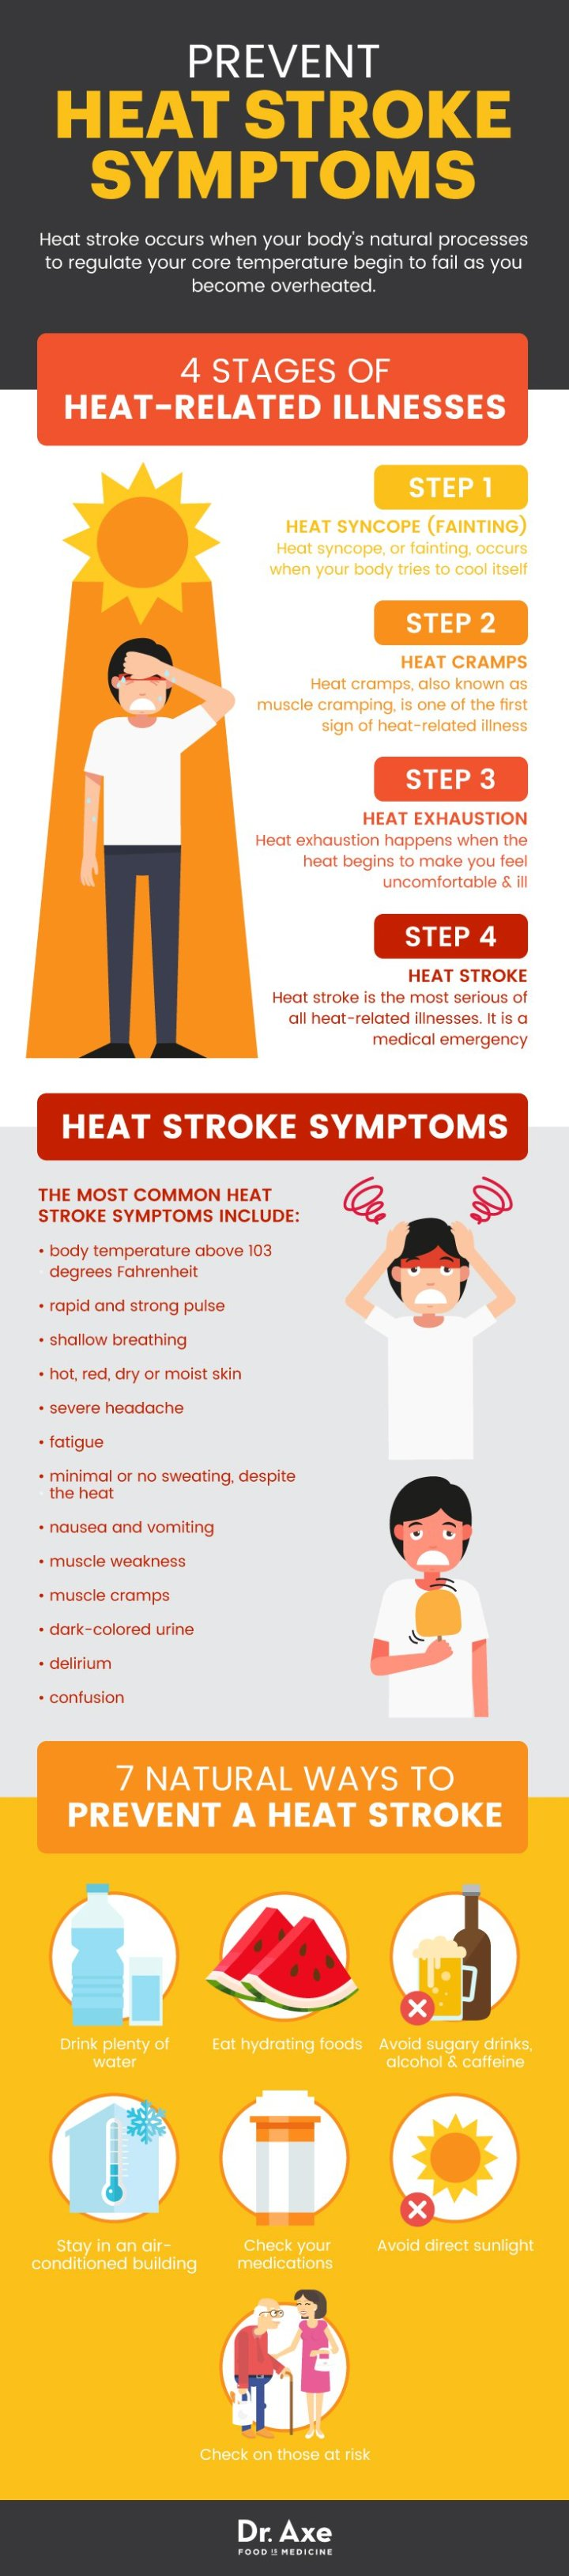 Prevent heat stroke symptoms - Dr. Axe